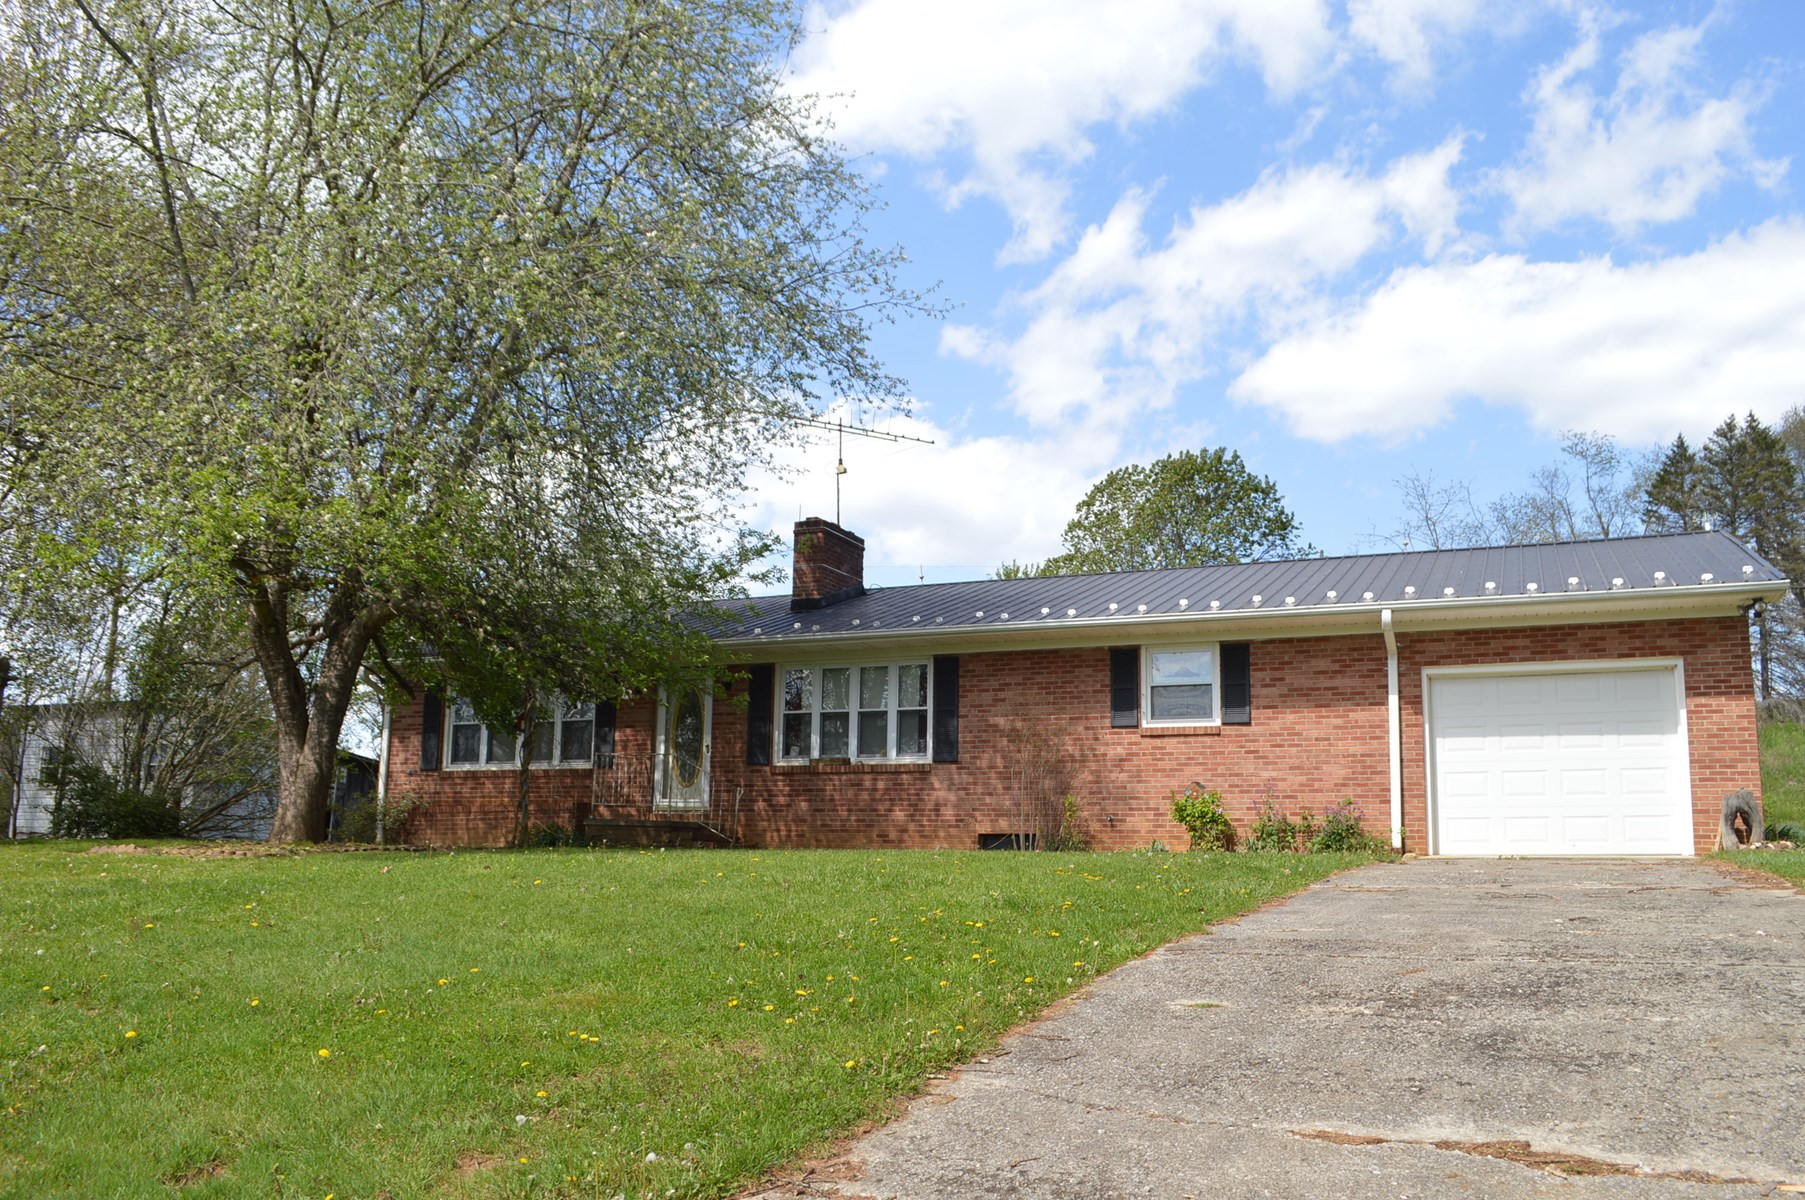 Brick Ranch Home in Grassy Creek VA for Sale